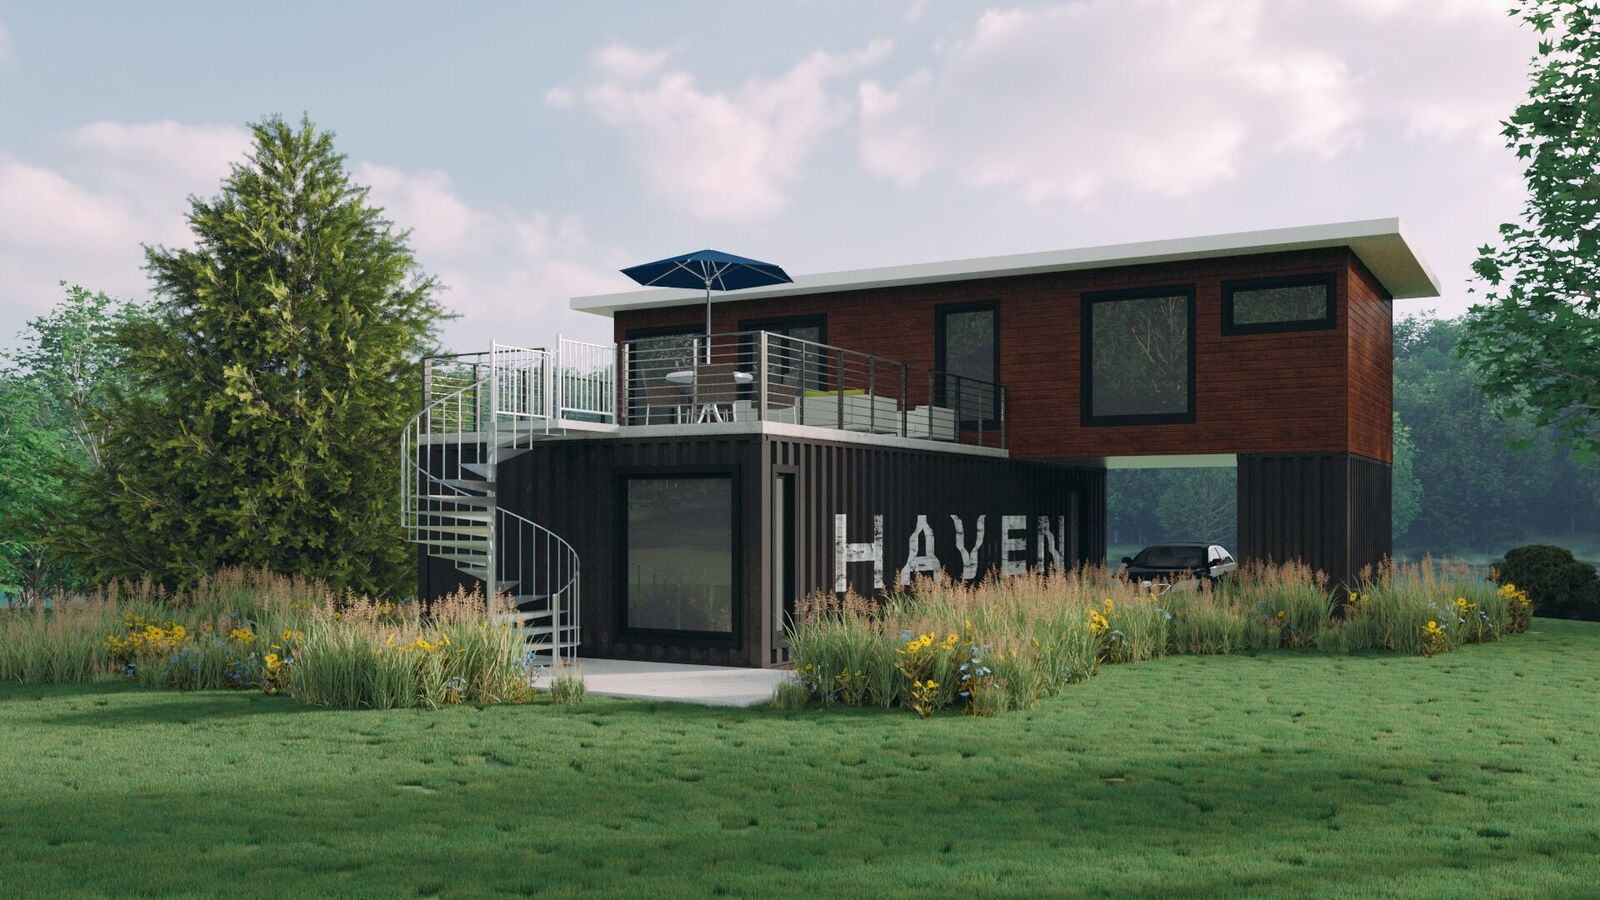 HAVEN, do good things, haven homes, Affordable prefab homes, prefab homes for sale, modern prefab homes, small modern prefab homes, modern prefab homes for sale, modern prefab homes east coast, net zero prefab homes, net zero homes, net zero prefab, sustainable prefab homes, sustainable homes for sale, affordable green prefab homes, off the grid modern prefab homes, small modular home, cost of modular homes vs. building, haven modular homes, haven prefab home, haven net zero home, haven east coast prefab, haven modern prefab home, haven do good things, modern homes for sale, modern homes virginia, modern homes east coast, haven modern home builders, ultra modern homes for sale, ultra modern home builders, shipping container homes for sale, shipping container home builders, shipping container home builders east coast, shipping container house floor plan, prefab shipping container home for sale, prefab shipping container home builders, home land furniture, airbnb real estate, airbnb investment, airbnb investment prefab modular, first time home buyer 2018 tips